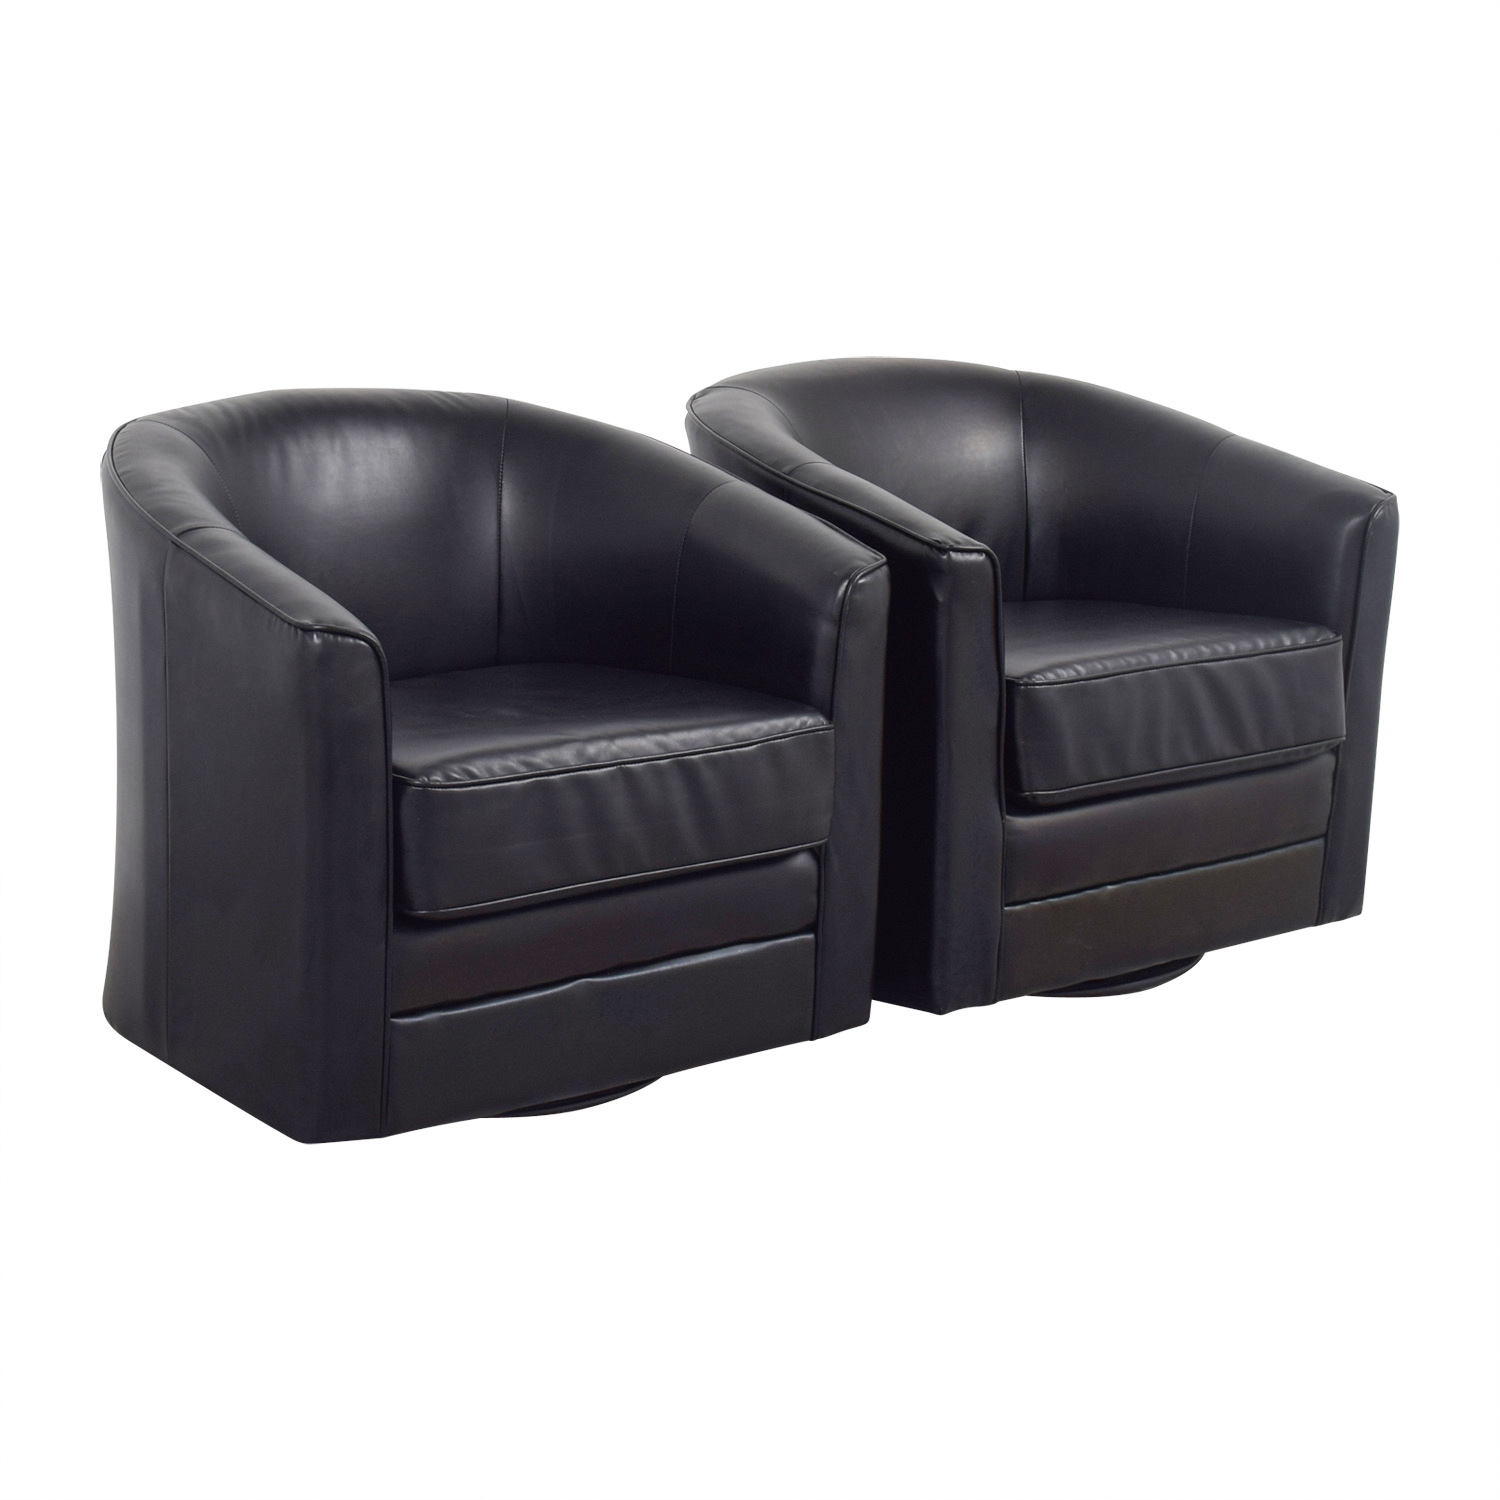 Prime 85 Off Bobs Discount Furniture Bobs Furniture Black Leather Arm Accent Chairs Chairs Machost Co Dining Chair Design Ideas Machostcouk